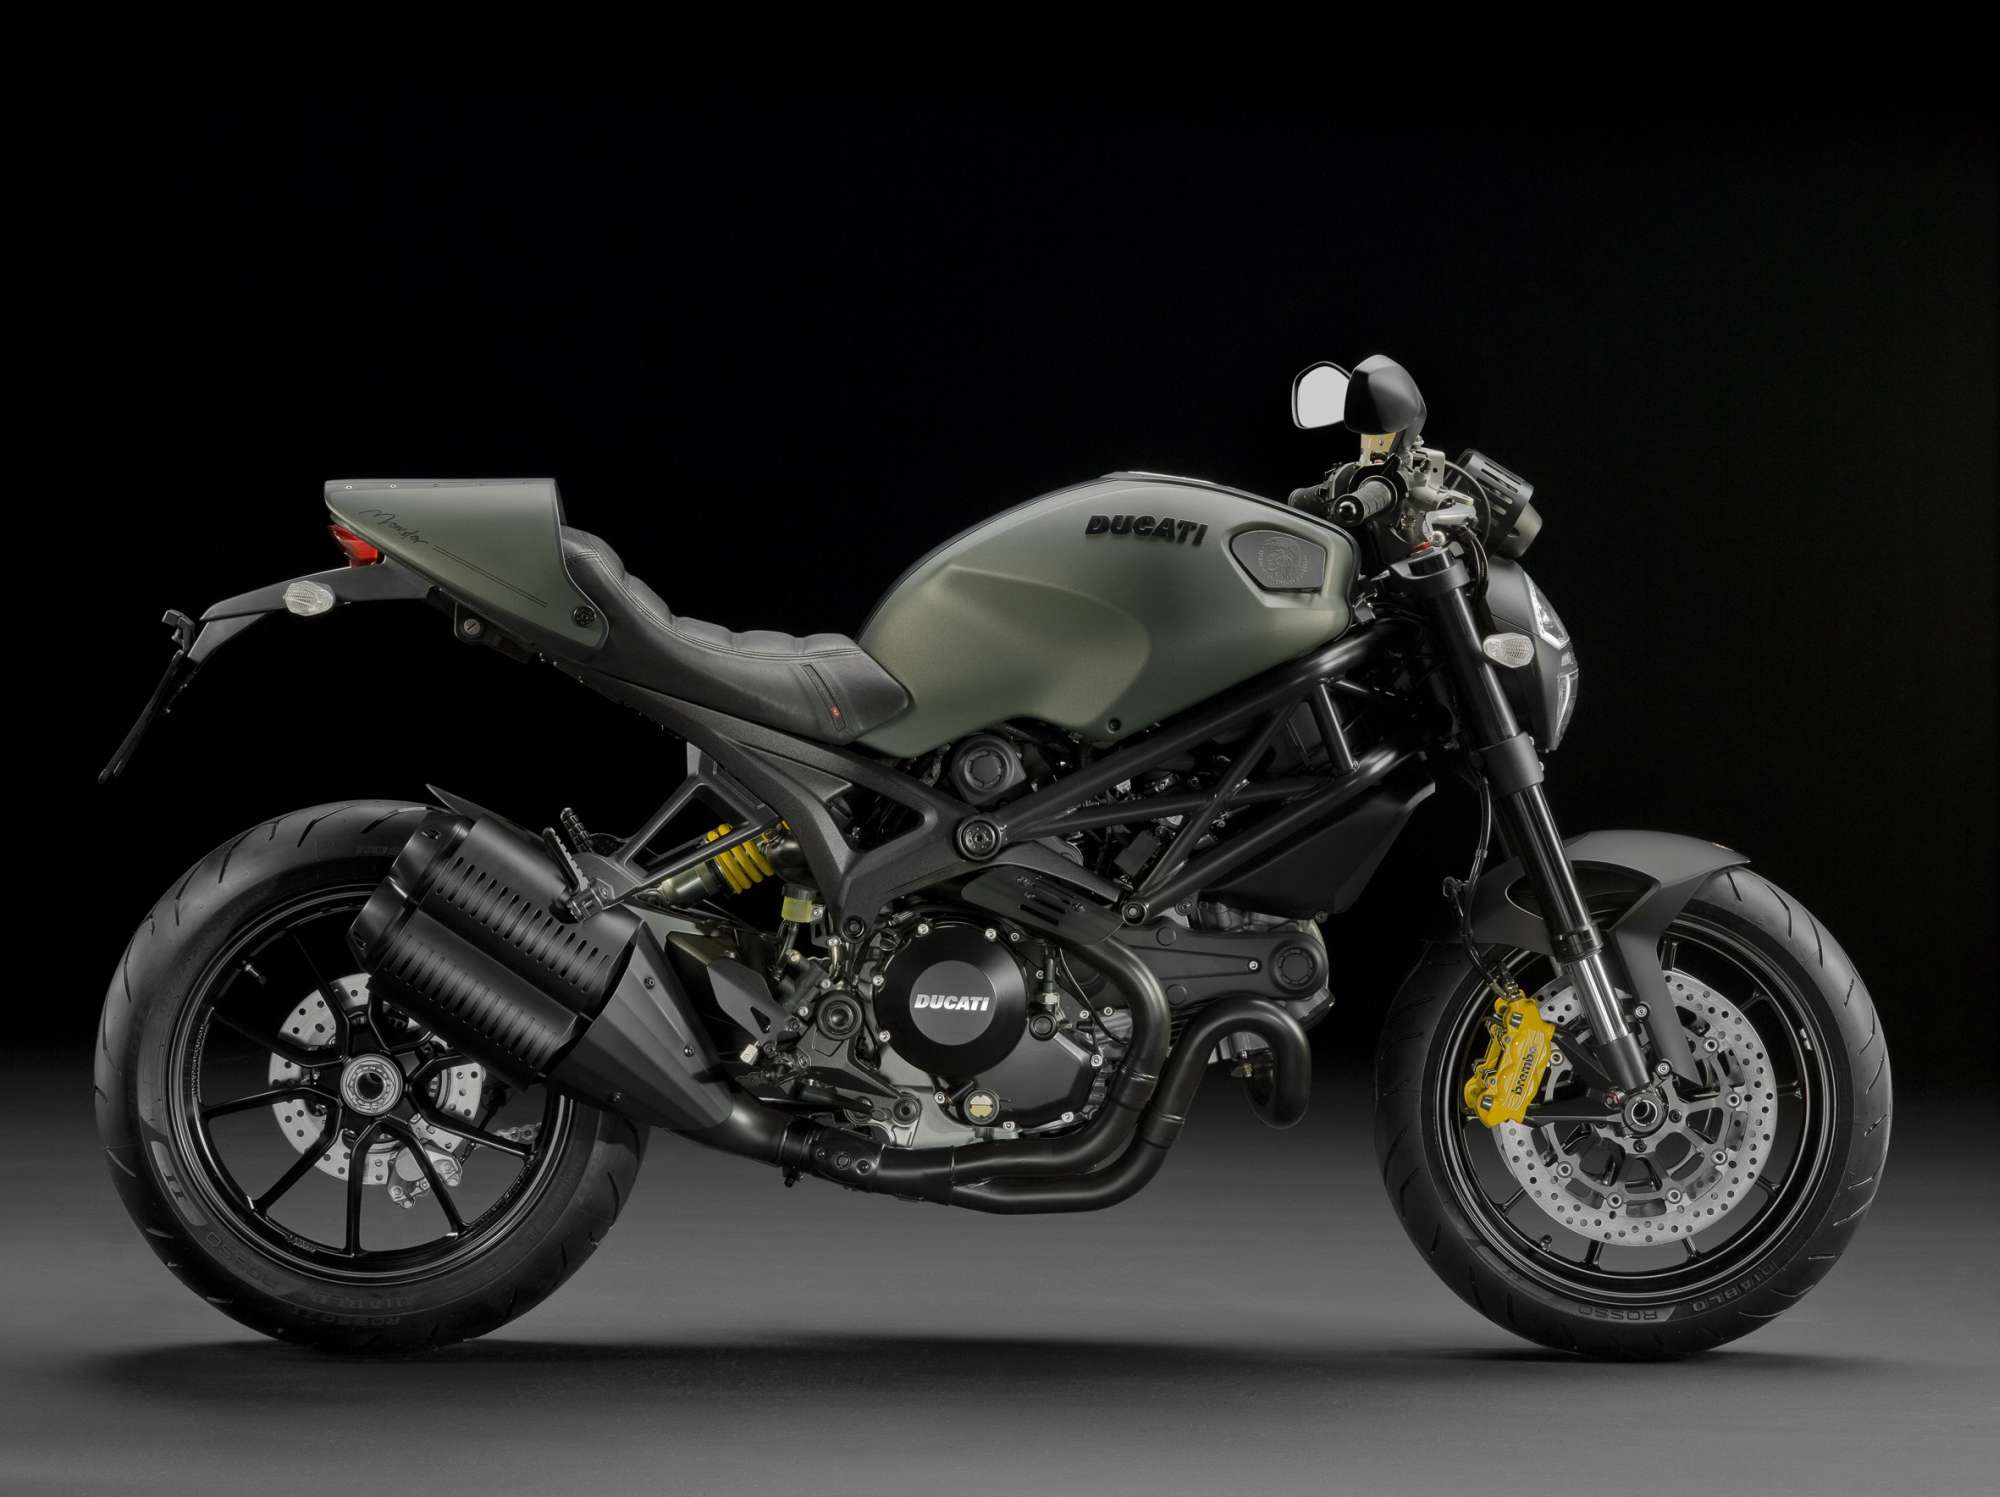 motorrad occasion ducati monster 1100 evo kaufen. Black Bedroom Furniture Sets. Home Design Ideas